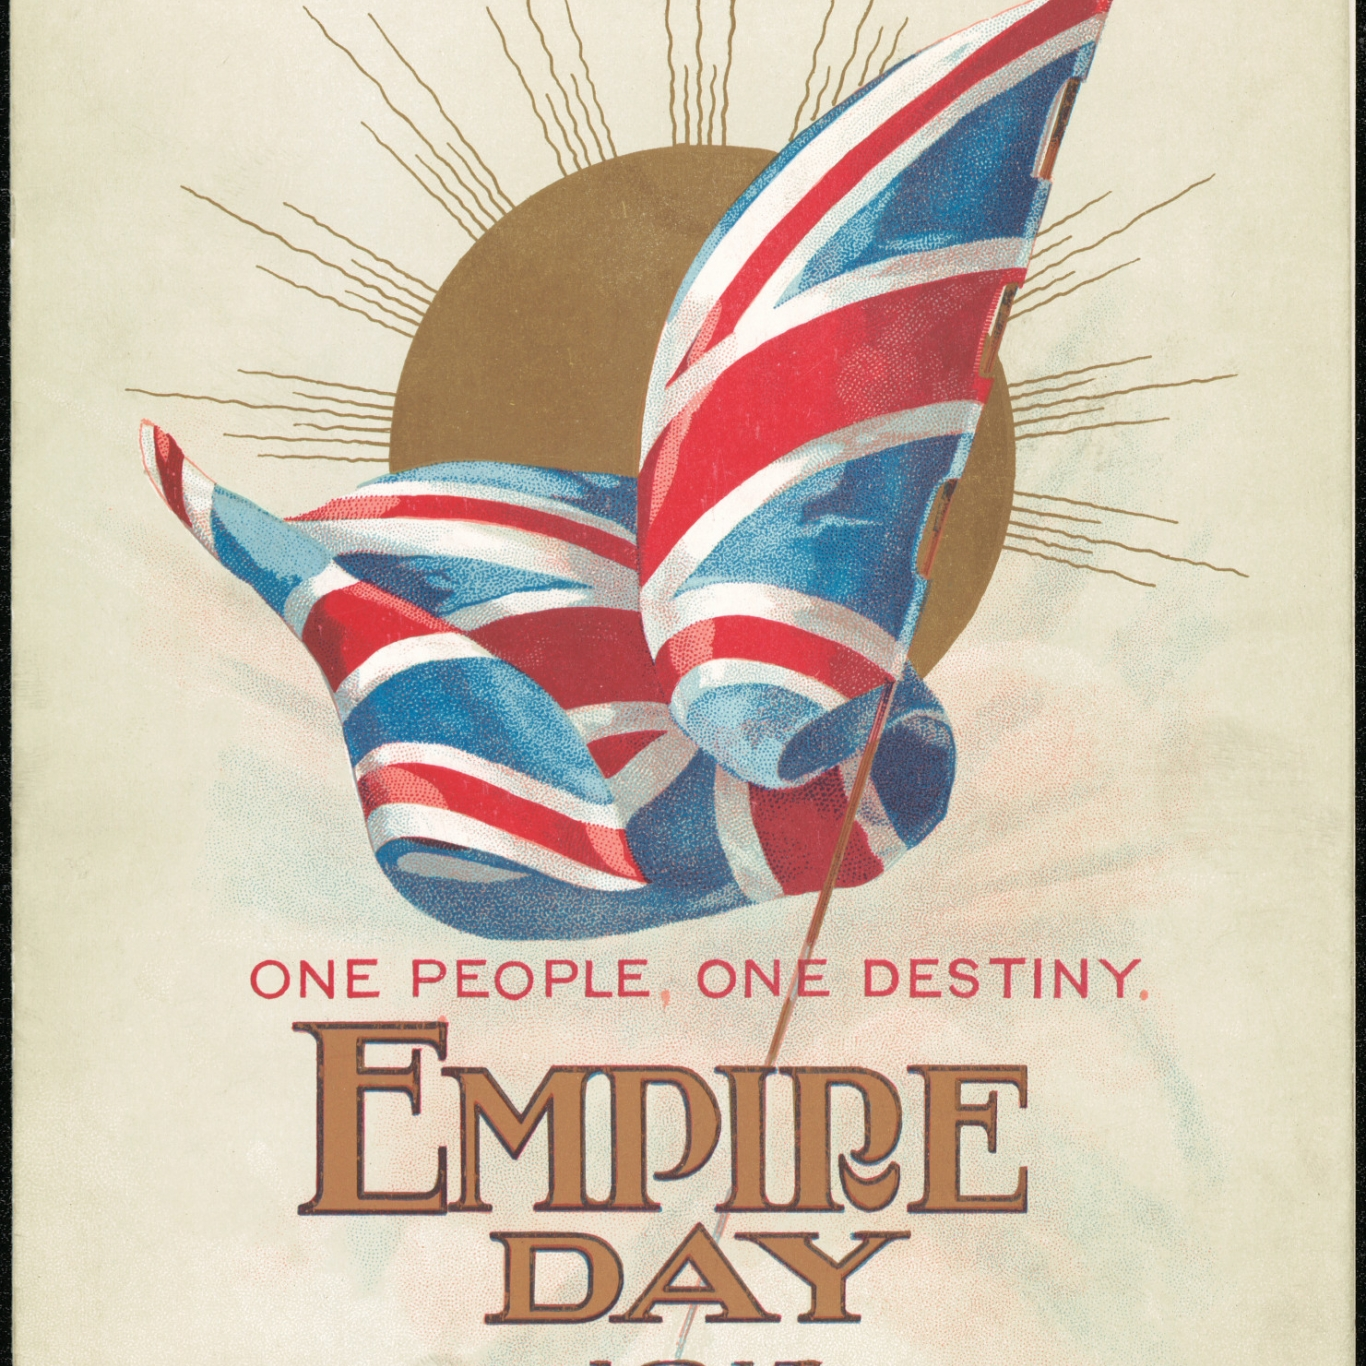 Paper printed with British flag against stylised sun, with the words: One People, One Destiny, Empire Day 1915.